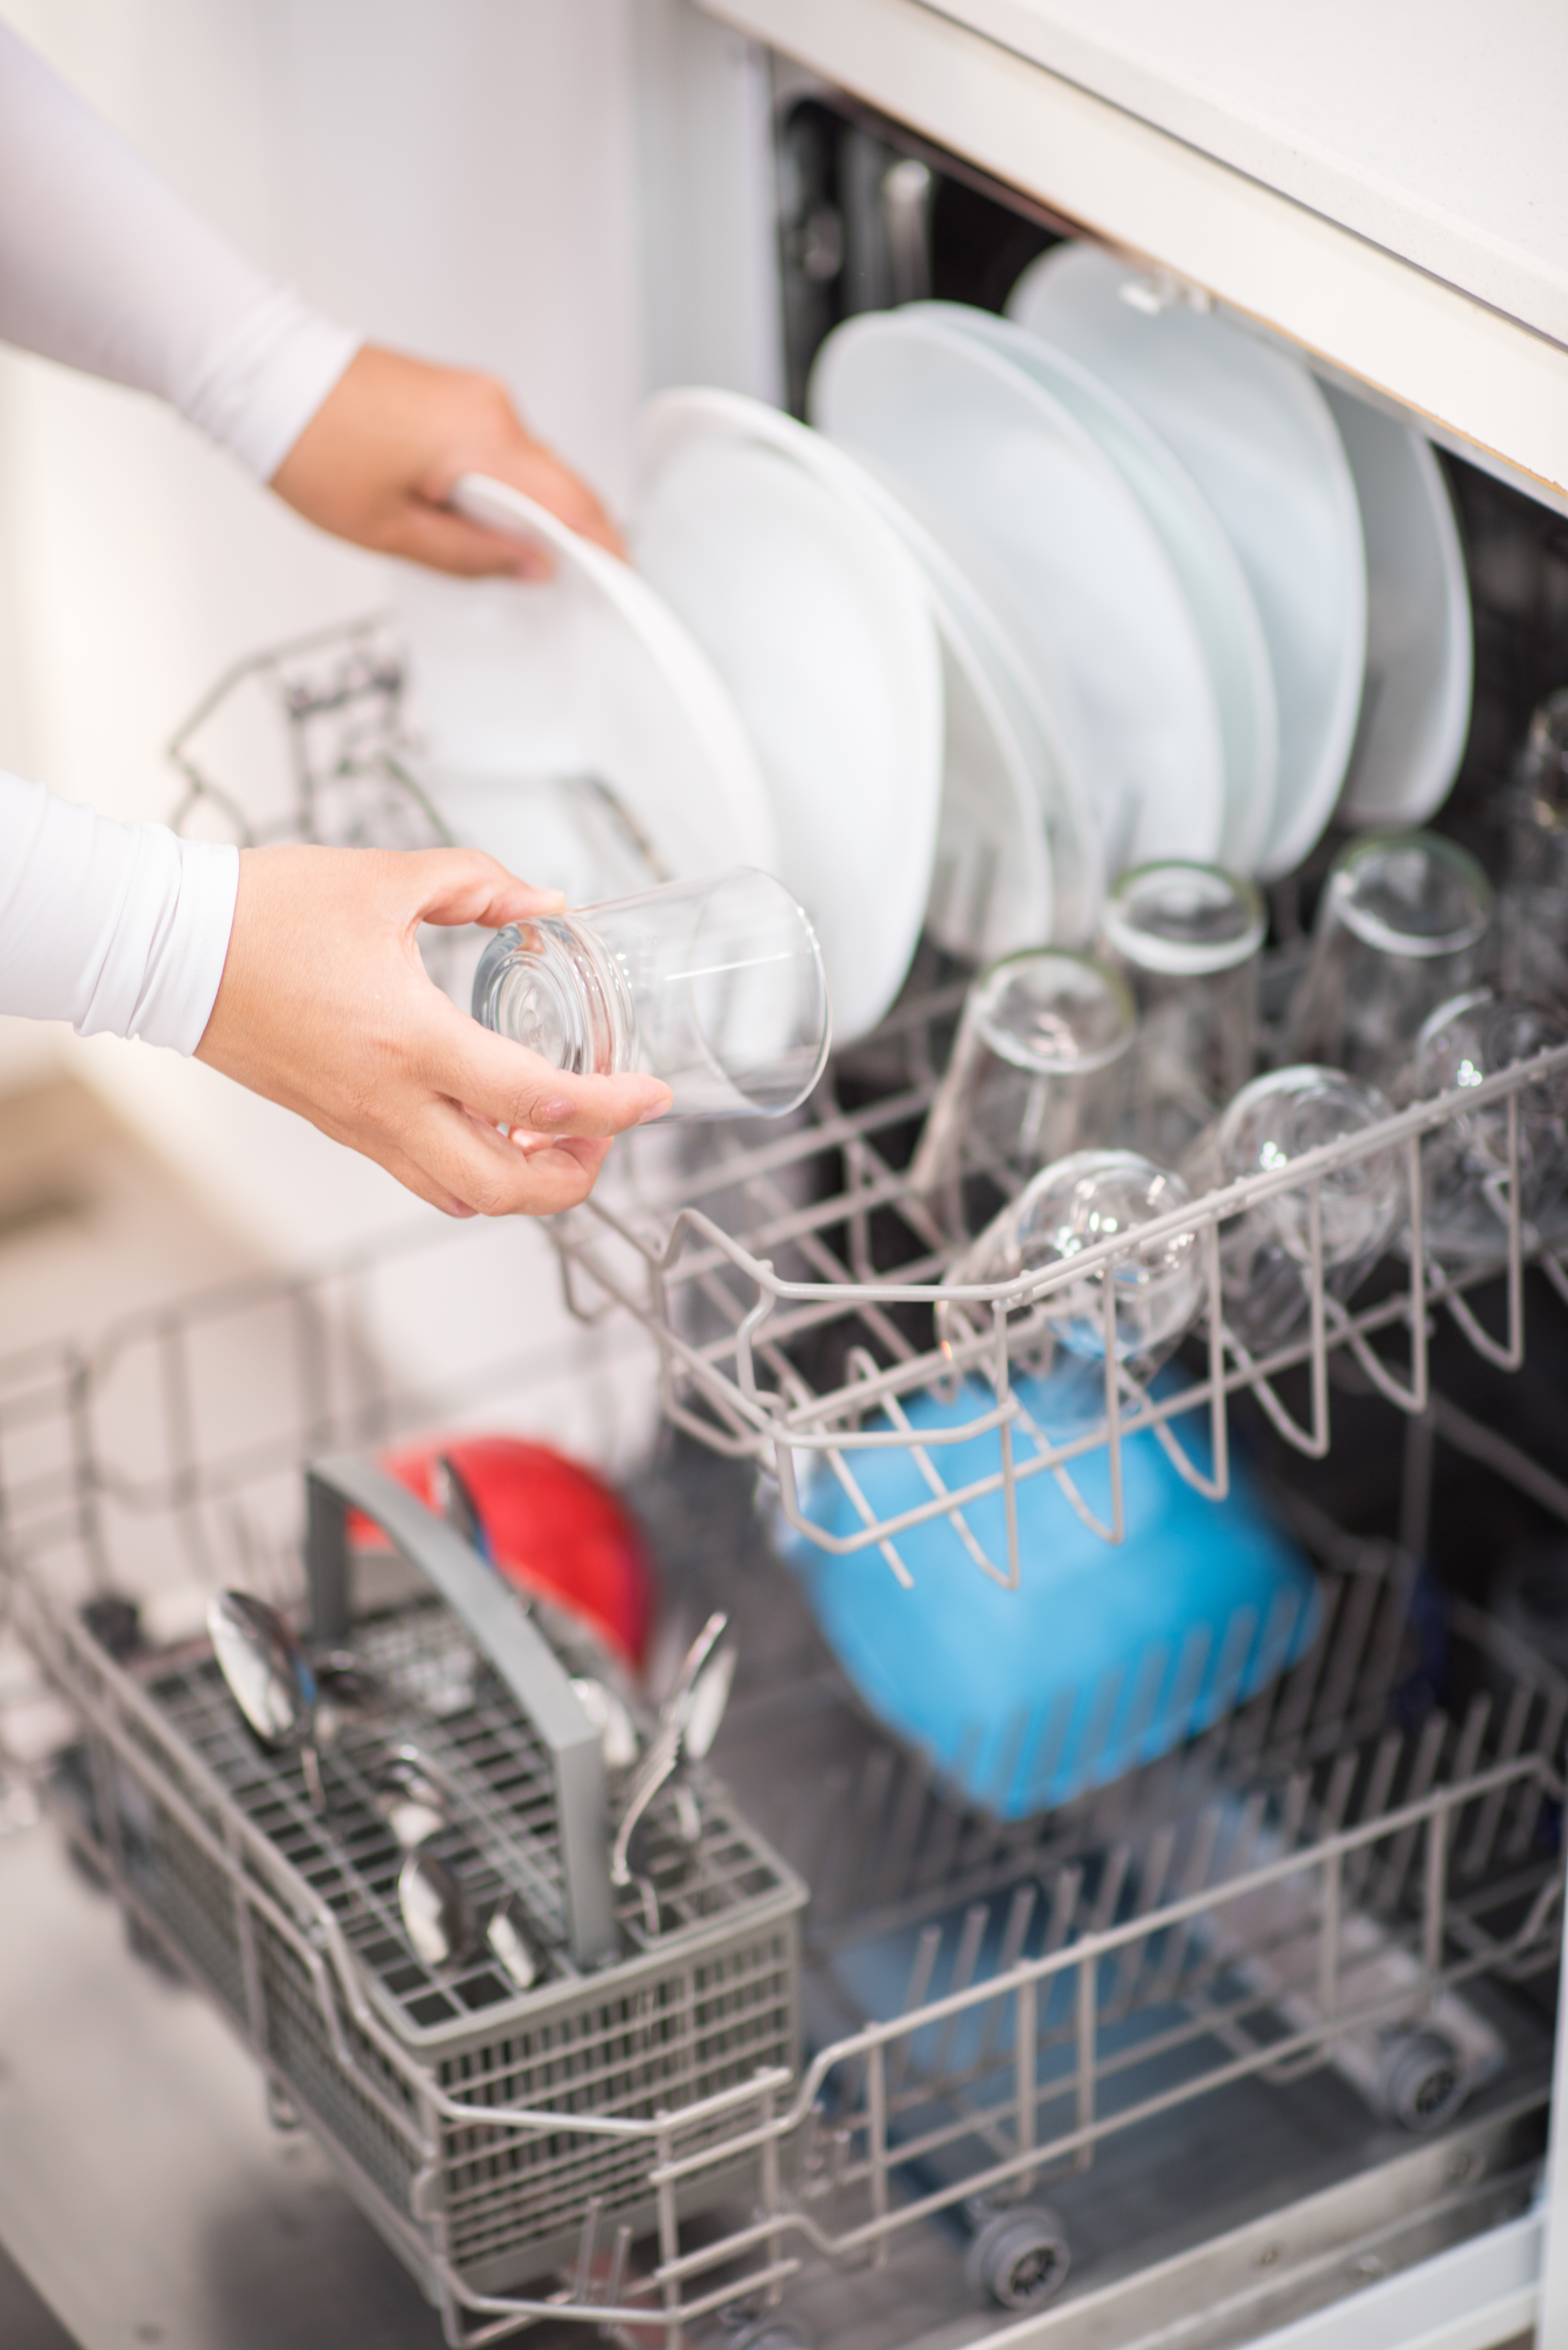 How To Keep Your Financial Office Dishwasher Eco-Friendly And Efficient